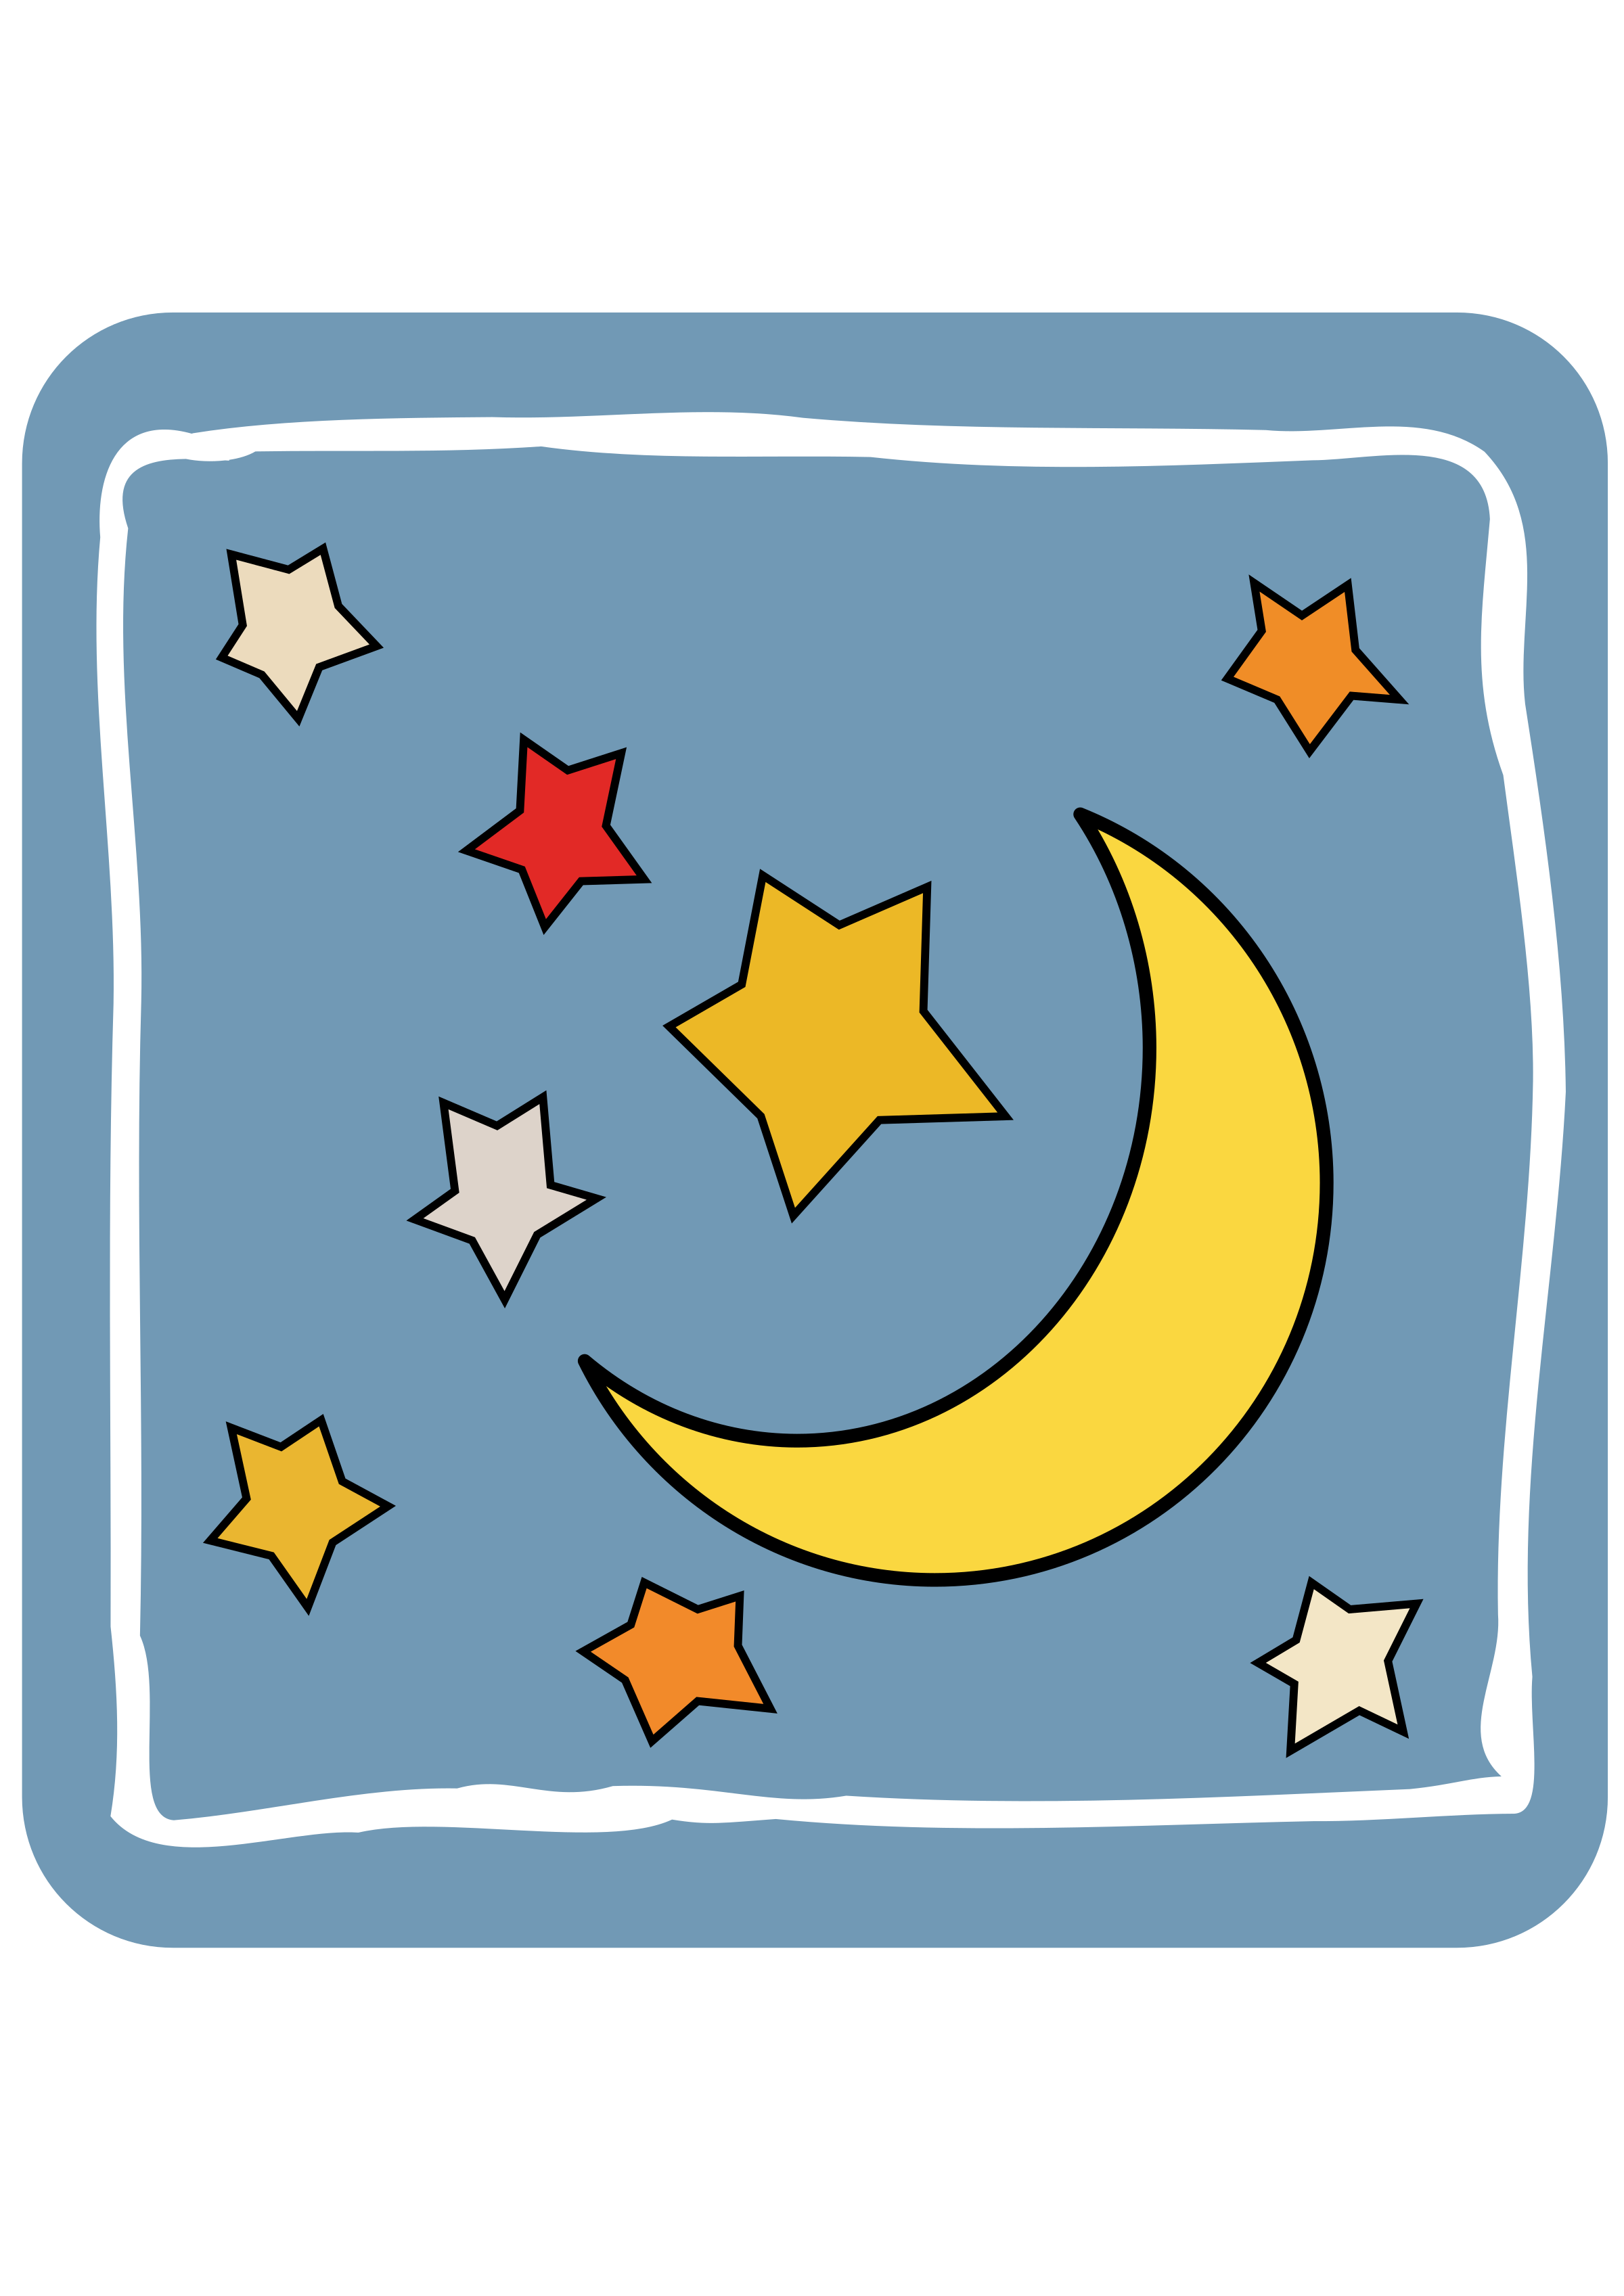 Icon Moon and stars by ejmillan